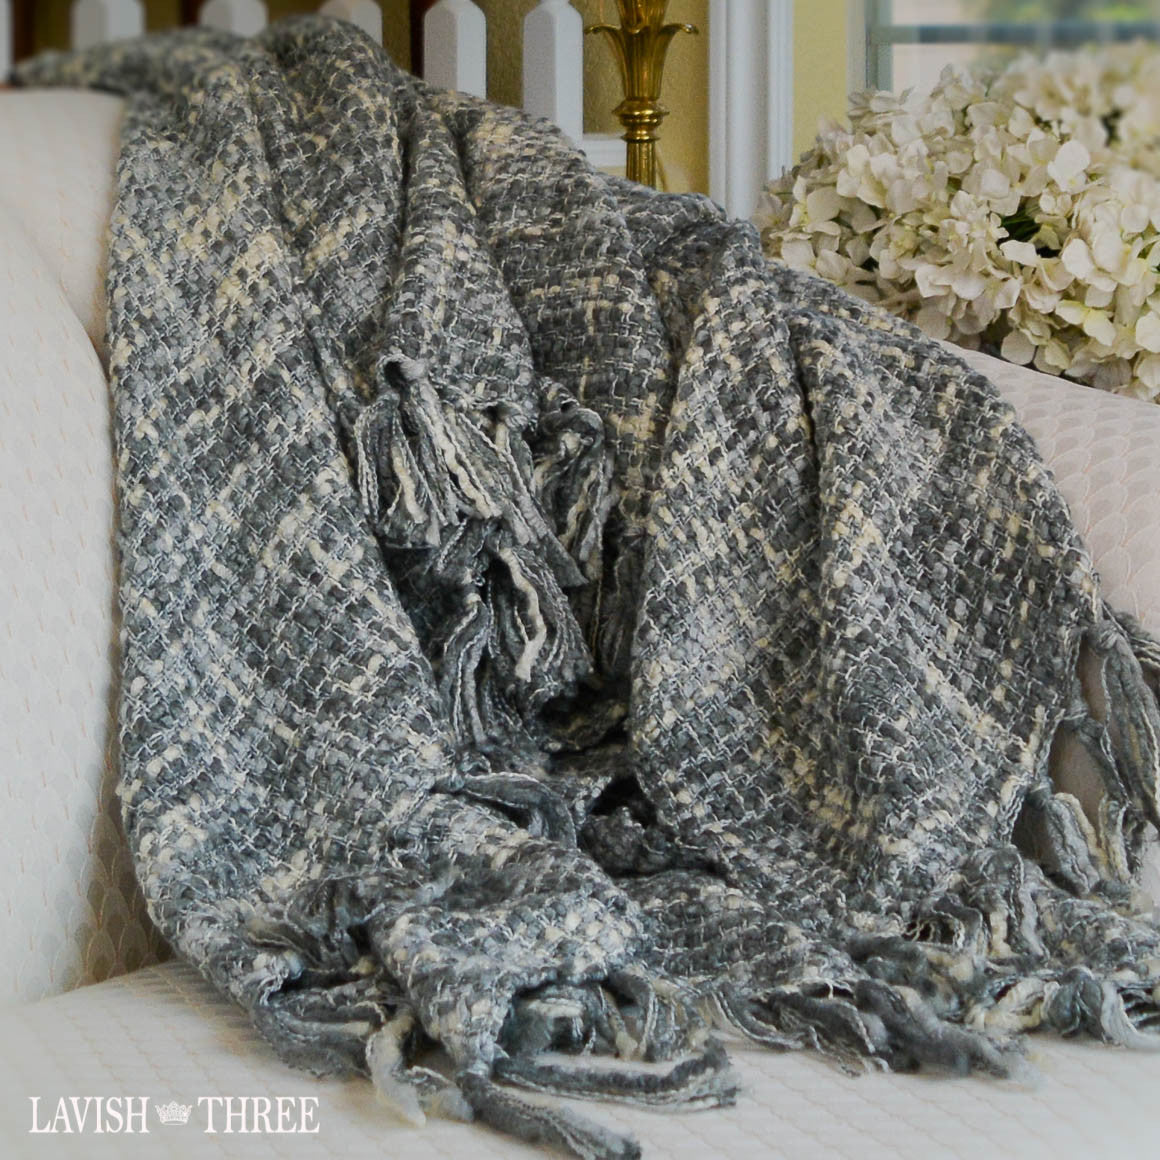 soft woven decorator throw blanket in gray and ivory lavish three 3 - Decorative Throw Blankets